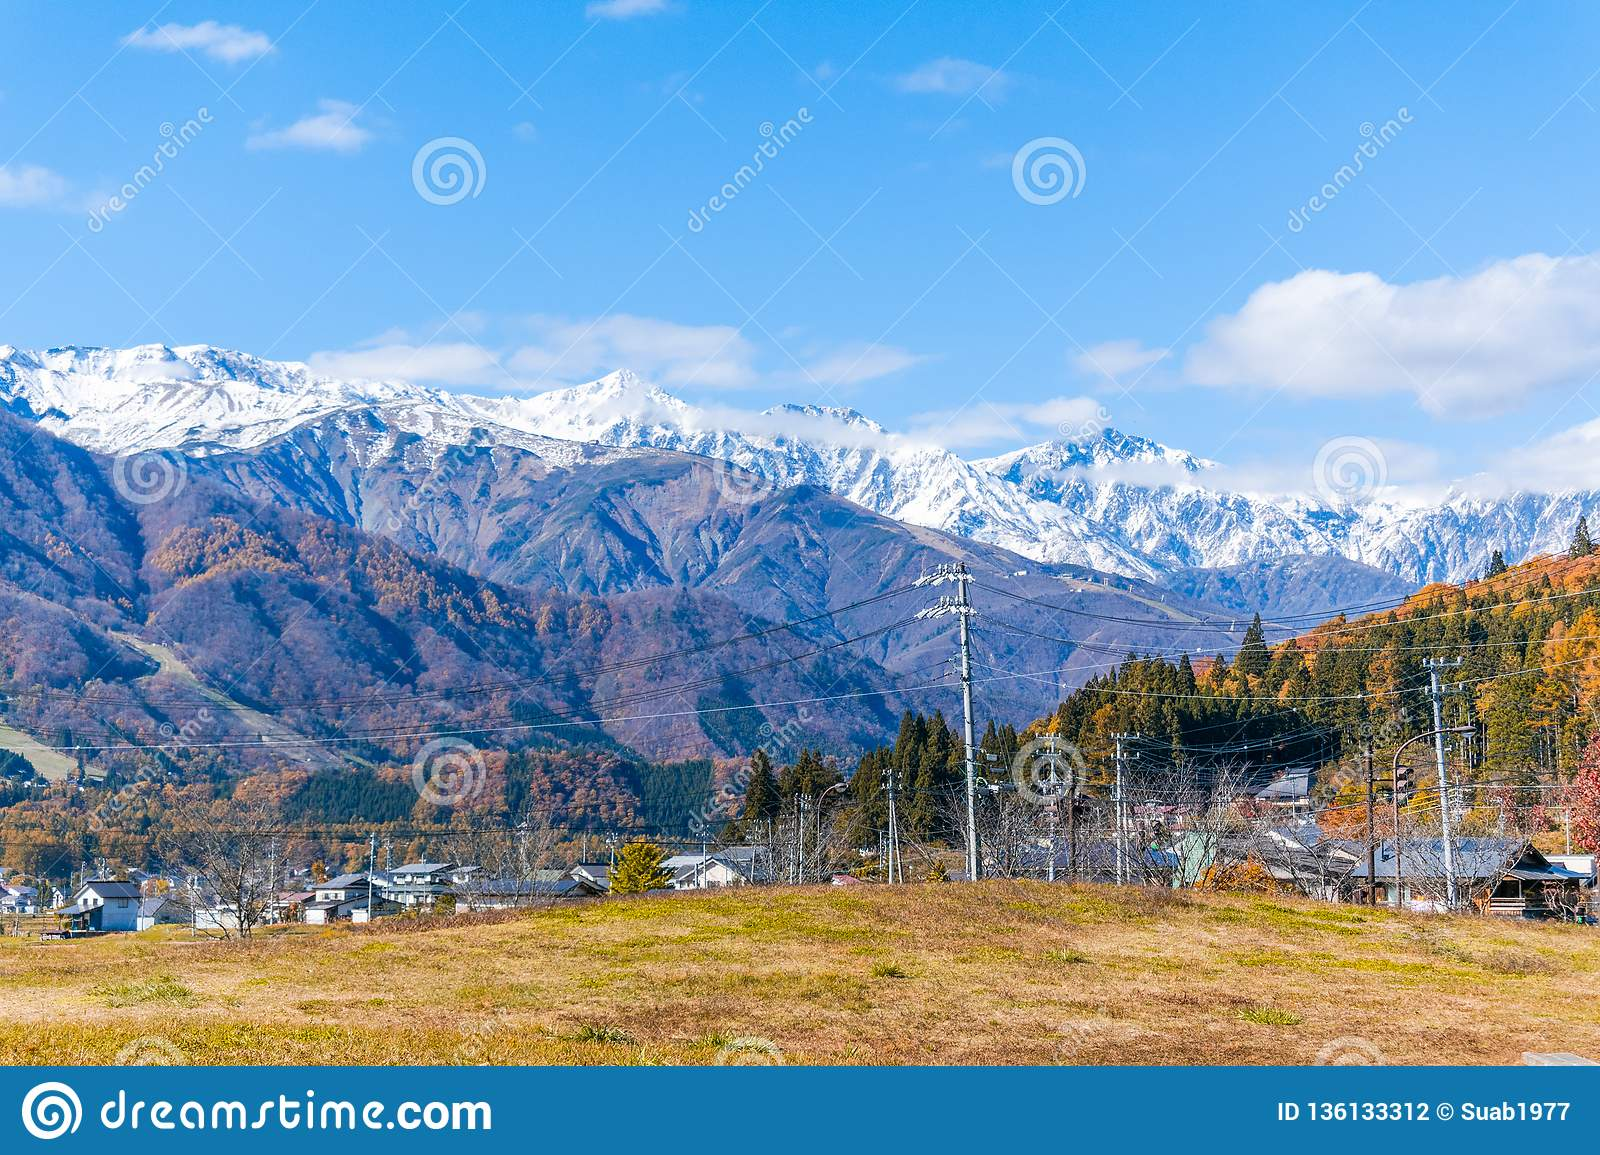 Beautiful landscape view of Hakuba in the winter with snow on the mountain and blue sky background in Nagano Japan